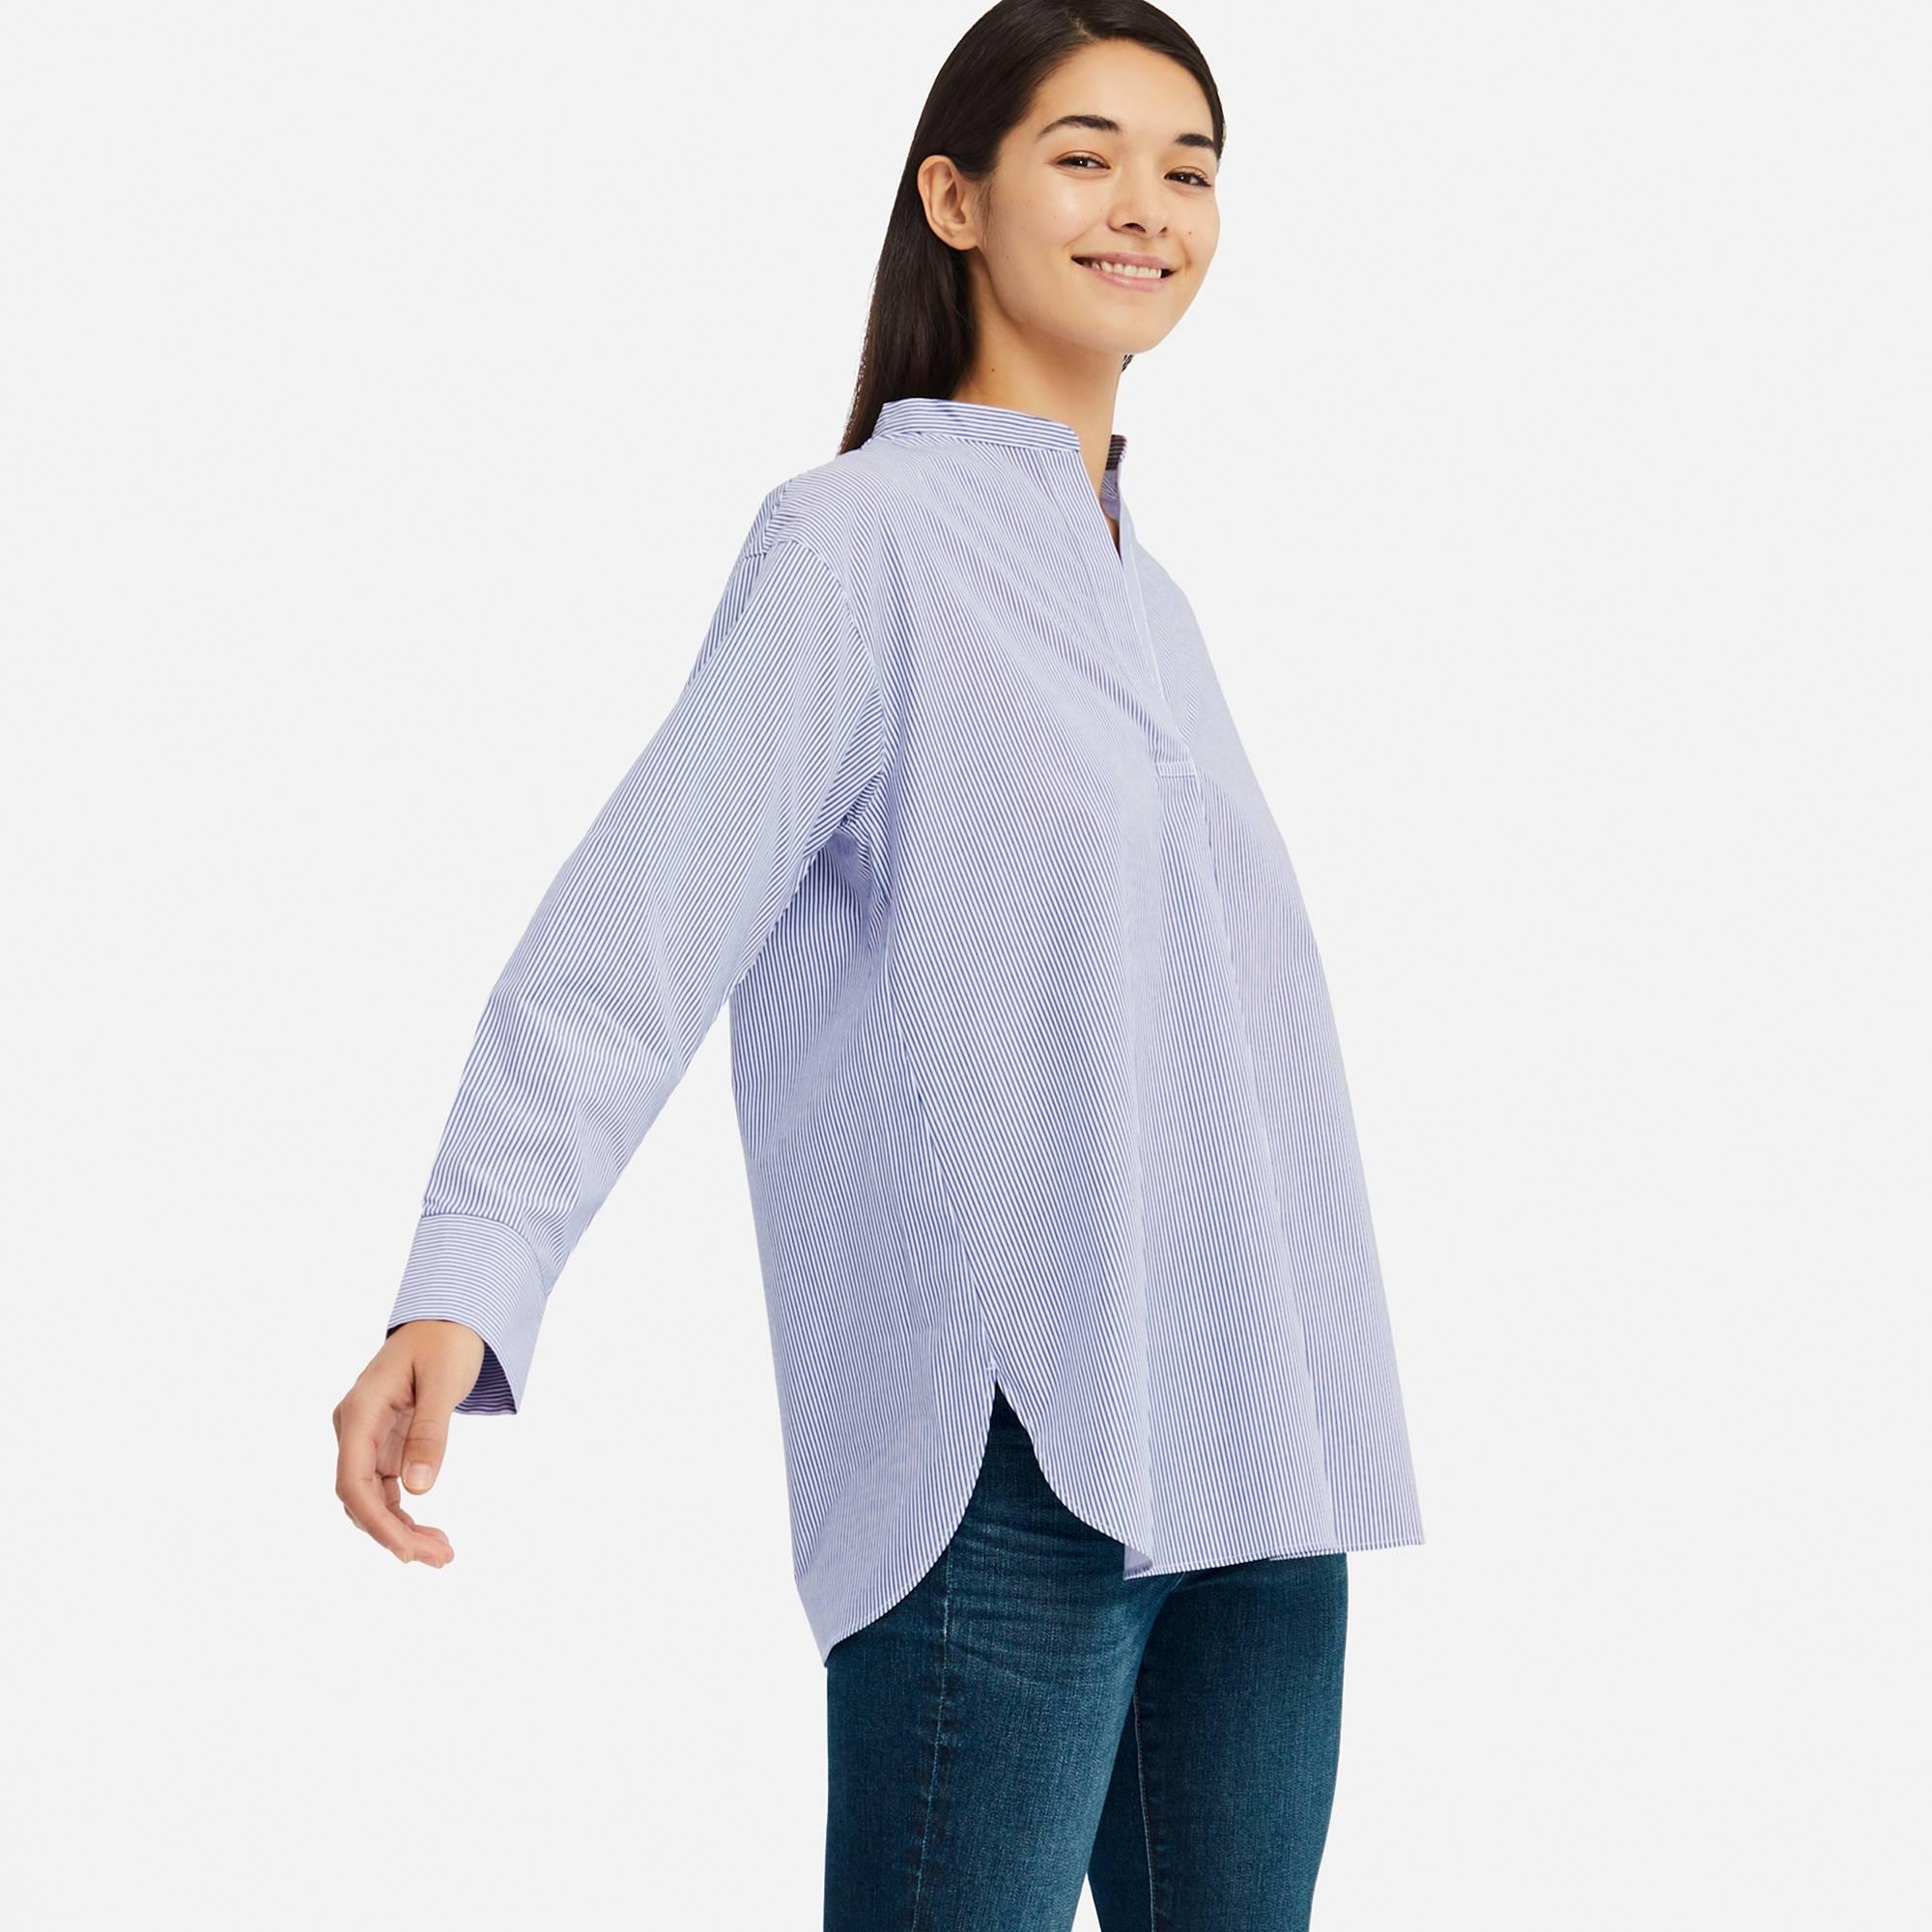 ad8ef550fa5b63 Lyst - Uniqlo Women Extra Fine Cotton Stand Collar Long-sleeve Shirt ...